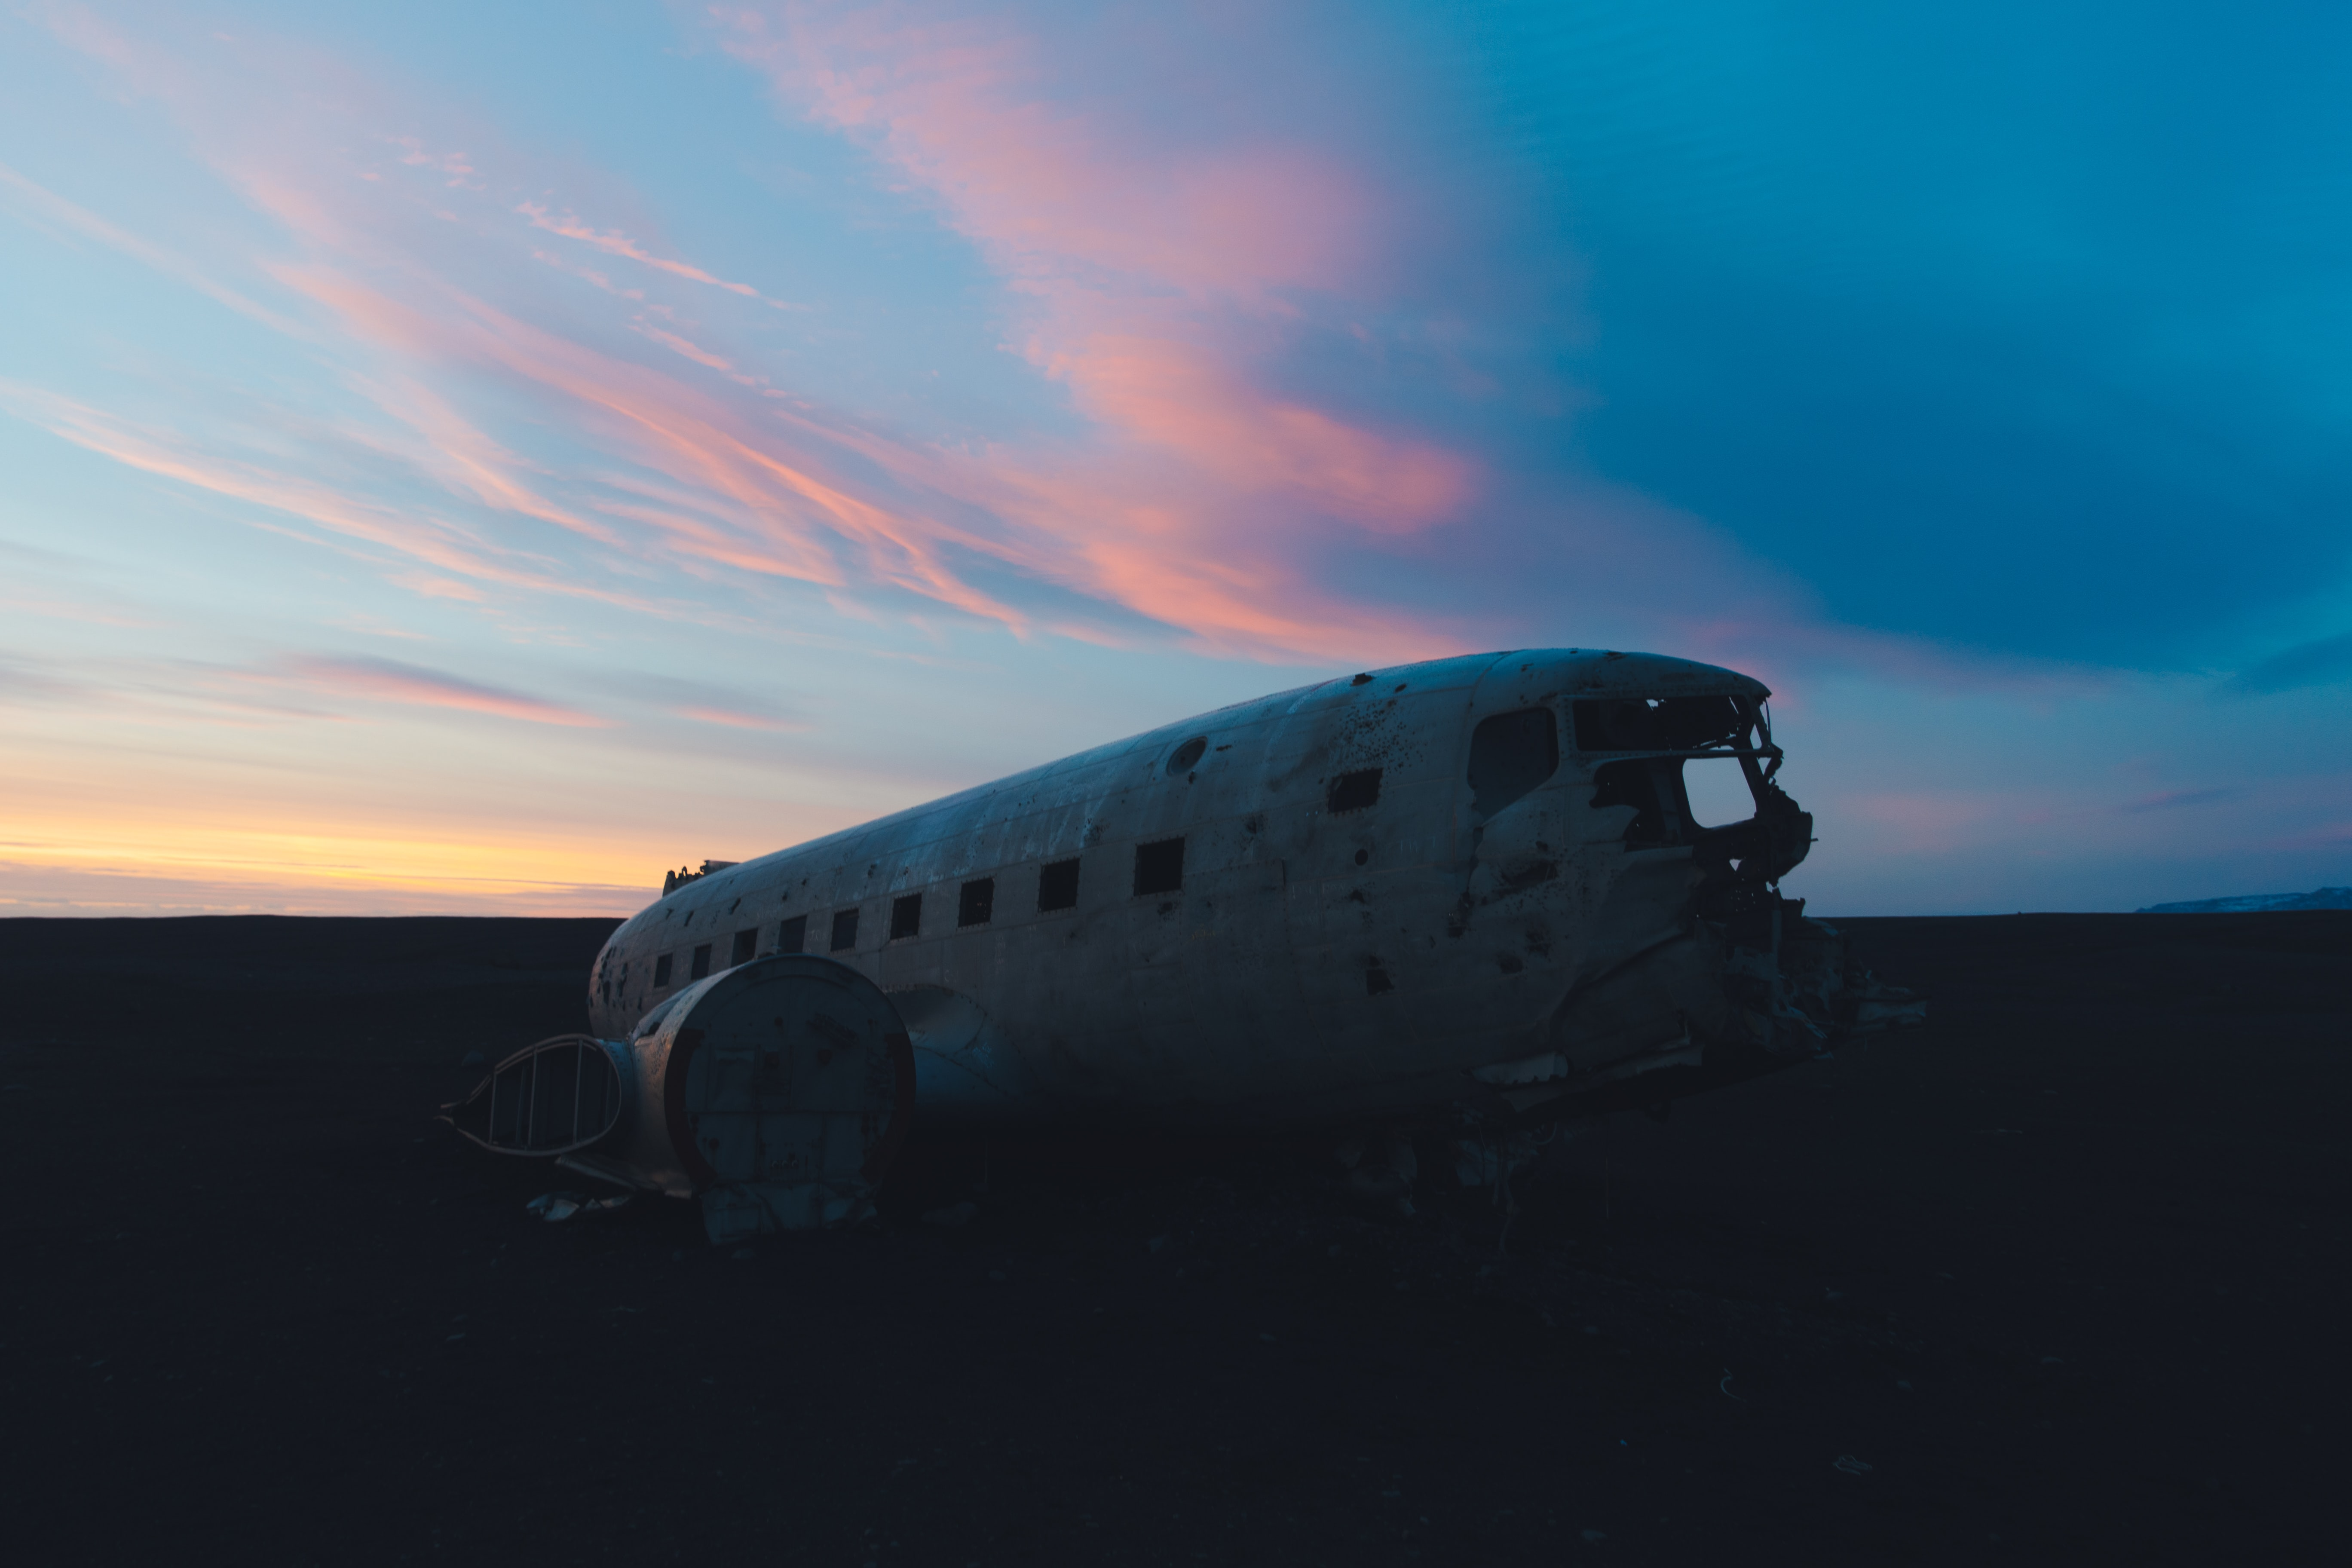 wrecked white airplane on open field